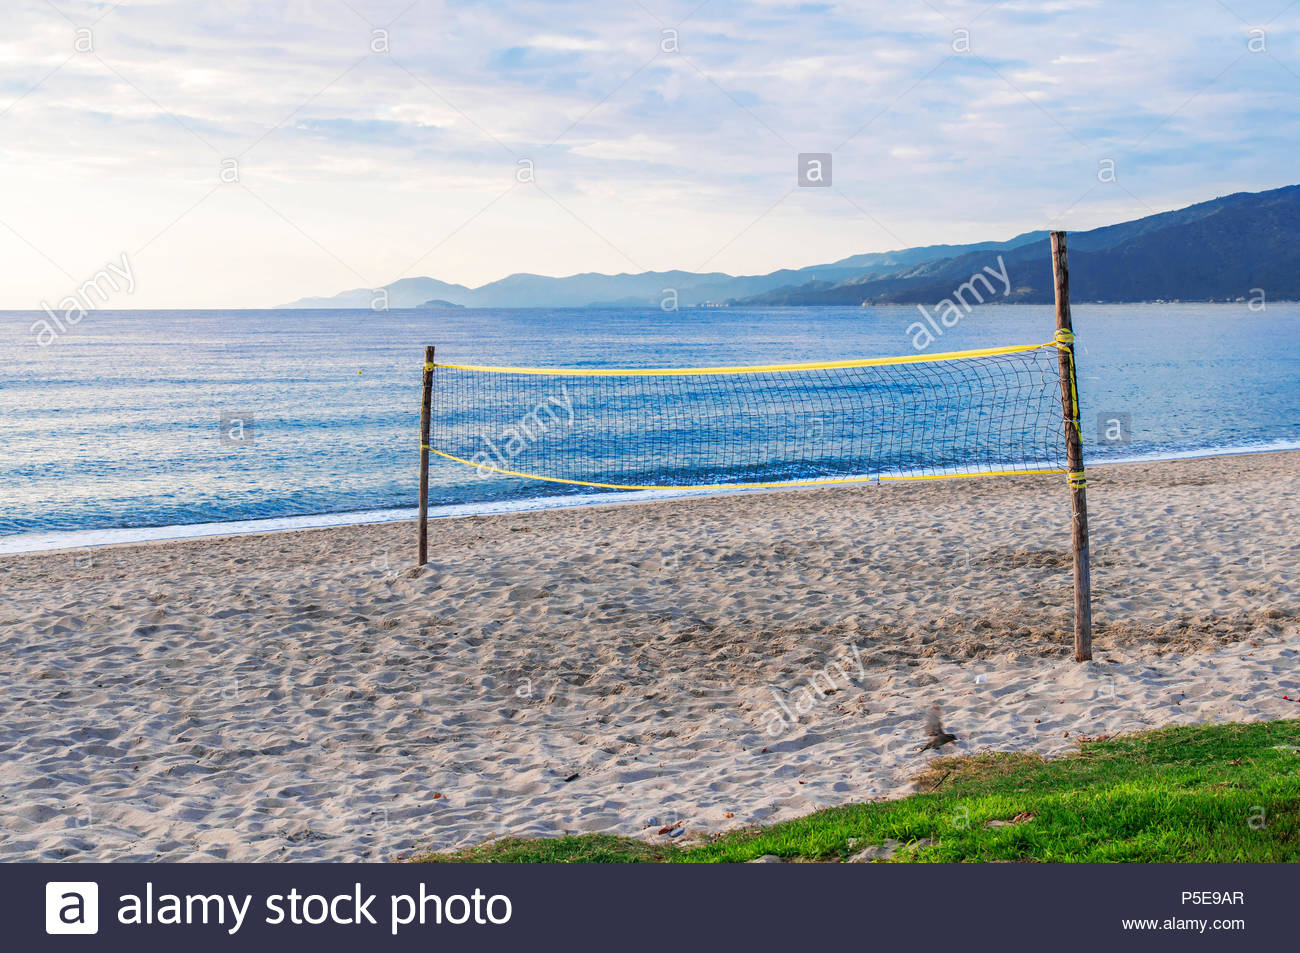 Beach volley court with sea background Stock Photo 209912383   Alamy 1300x953